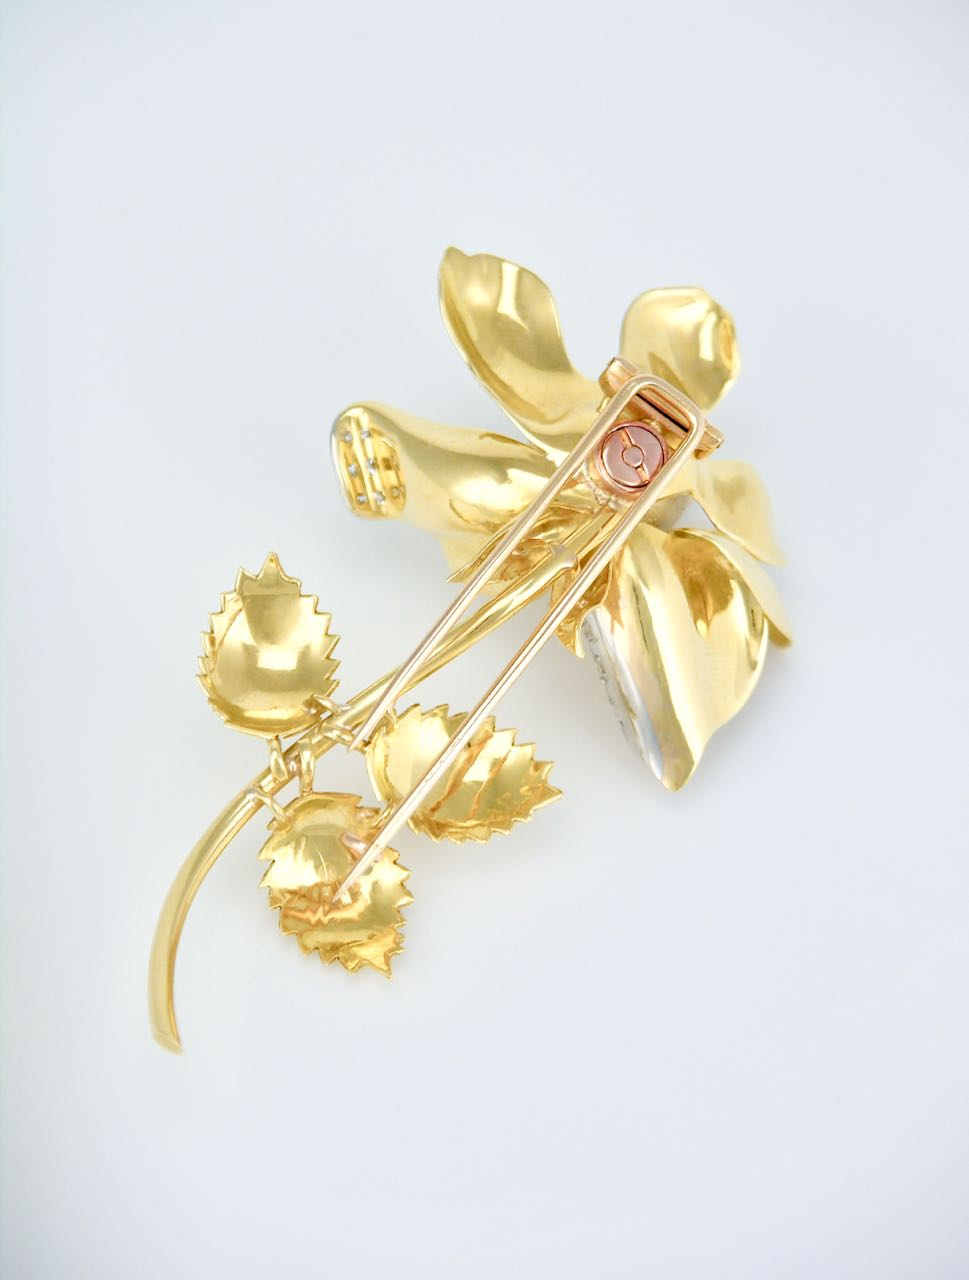 Vintage 18k Yellow Gold and Diamond Rose Brooch Pin 1960s